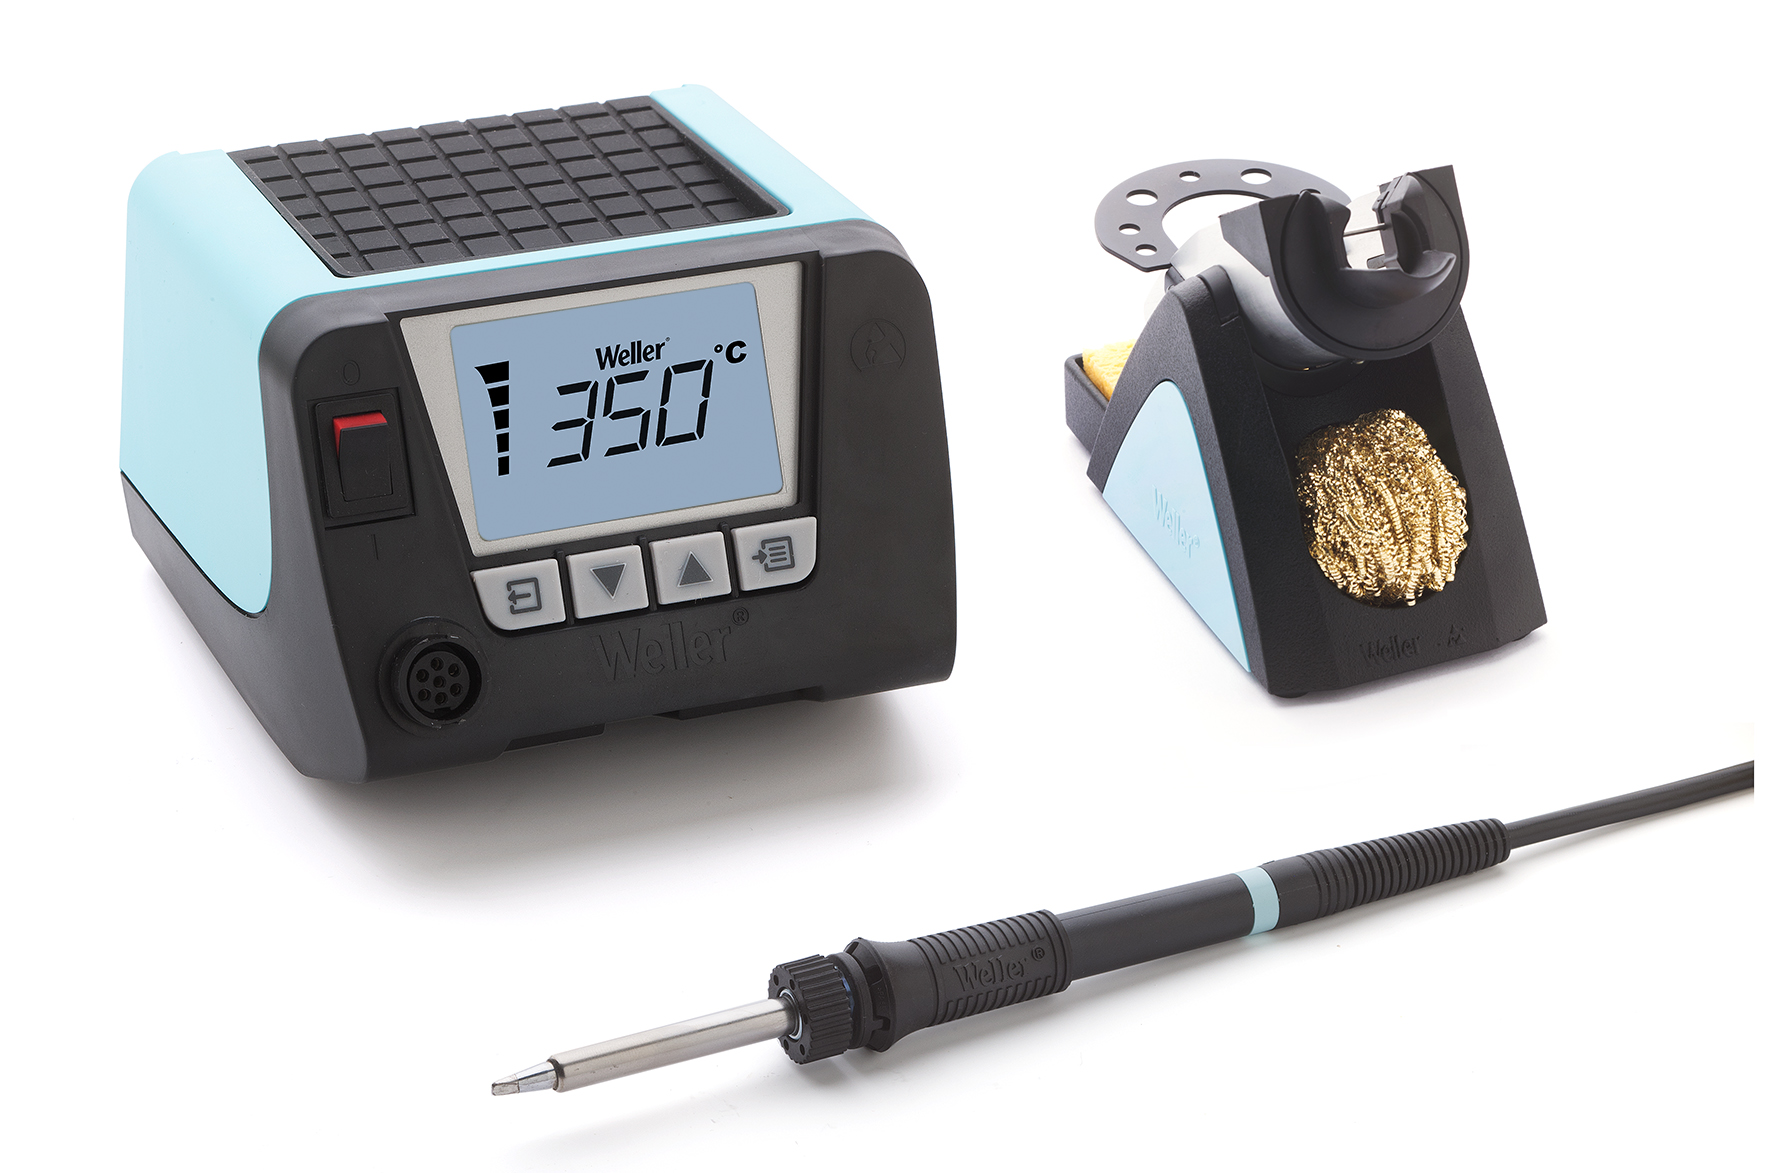 Weller WT 1014 Affordable Soldering Station